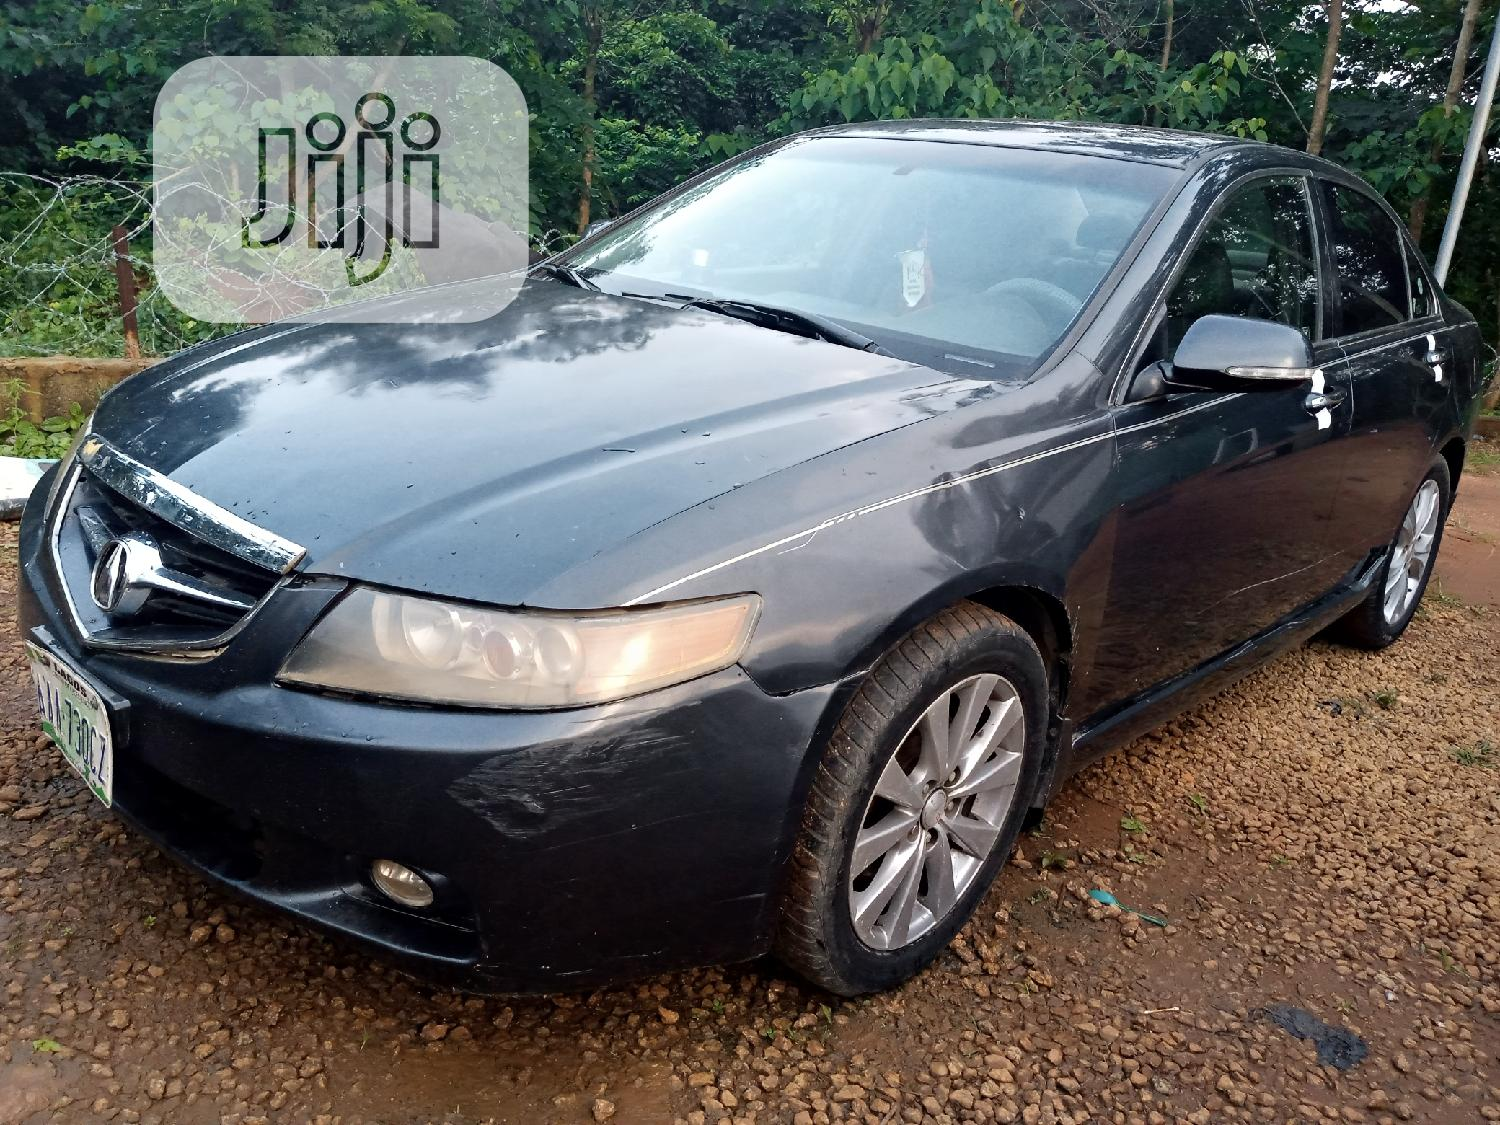 Acura Tsx 2005 Automatic Blue In Katampe Cars Sunday Olim Jiji Ng For Sale In Katampe Buy Cars From Sunday Olim On Jiji Ng